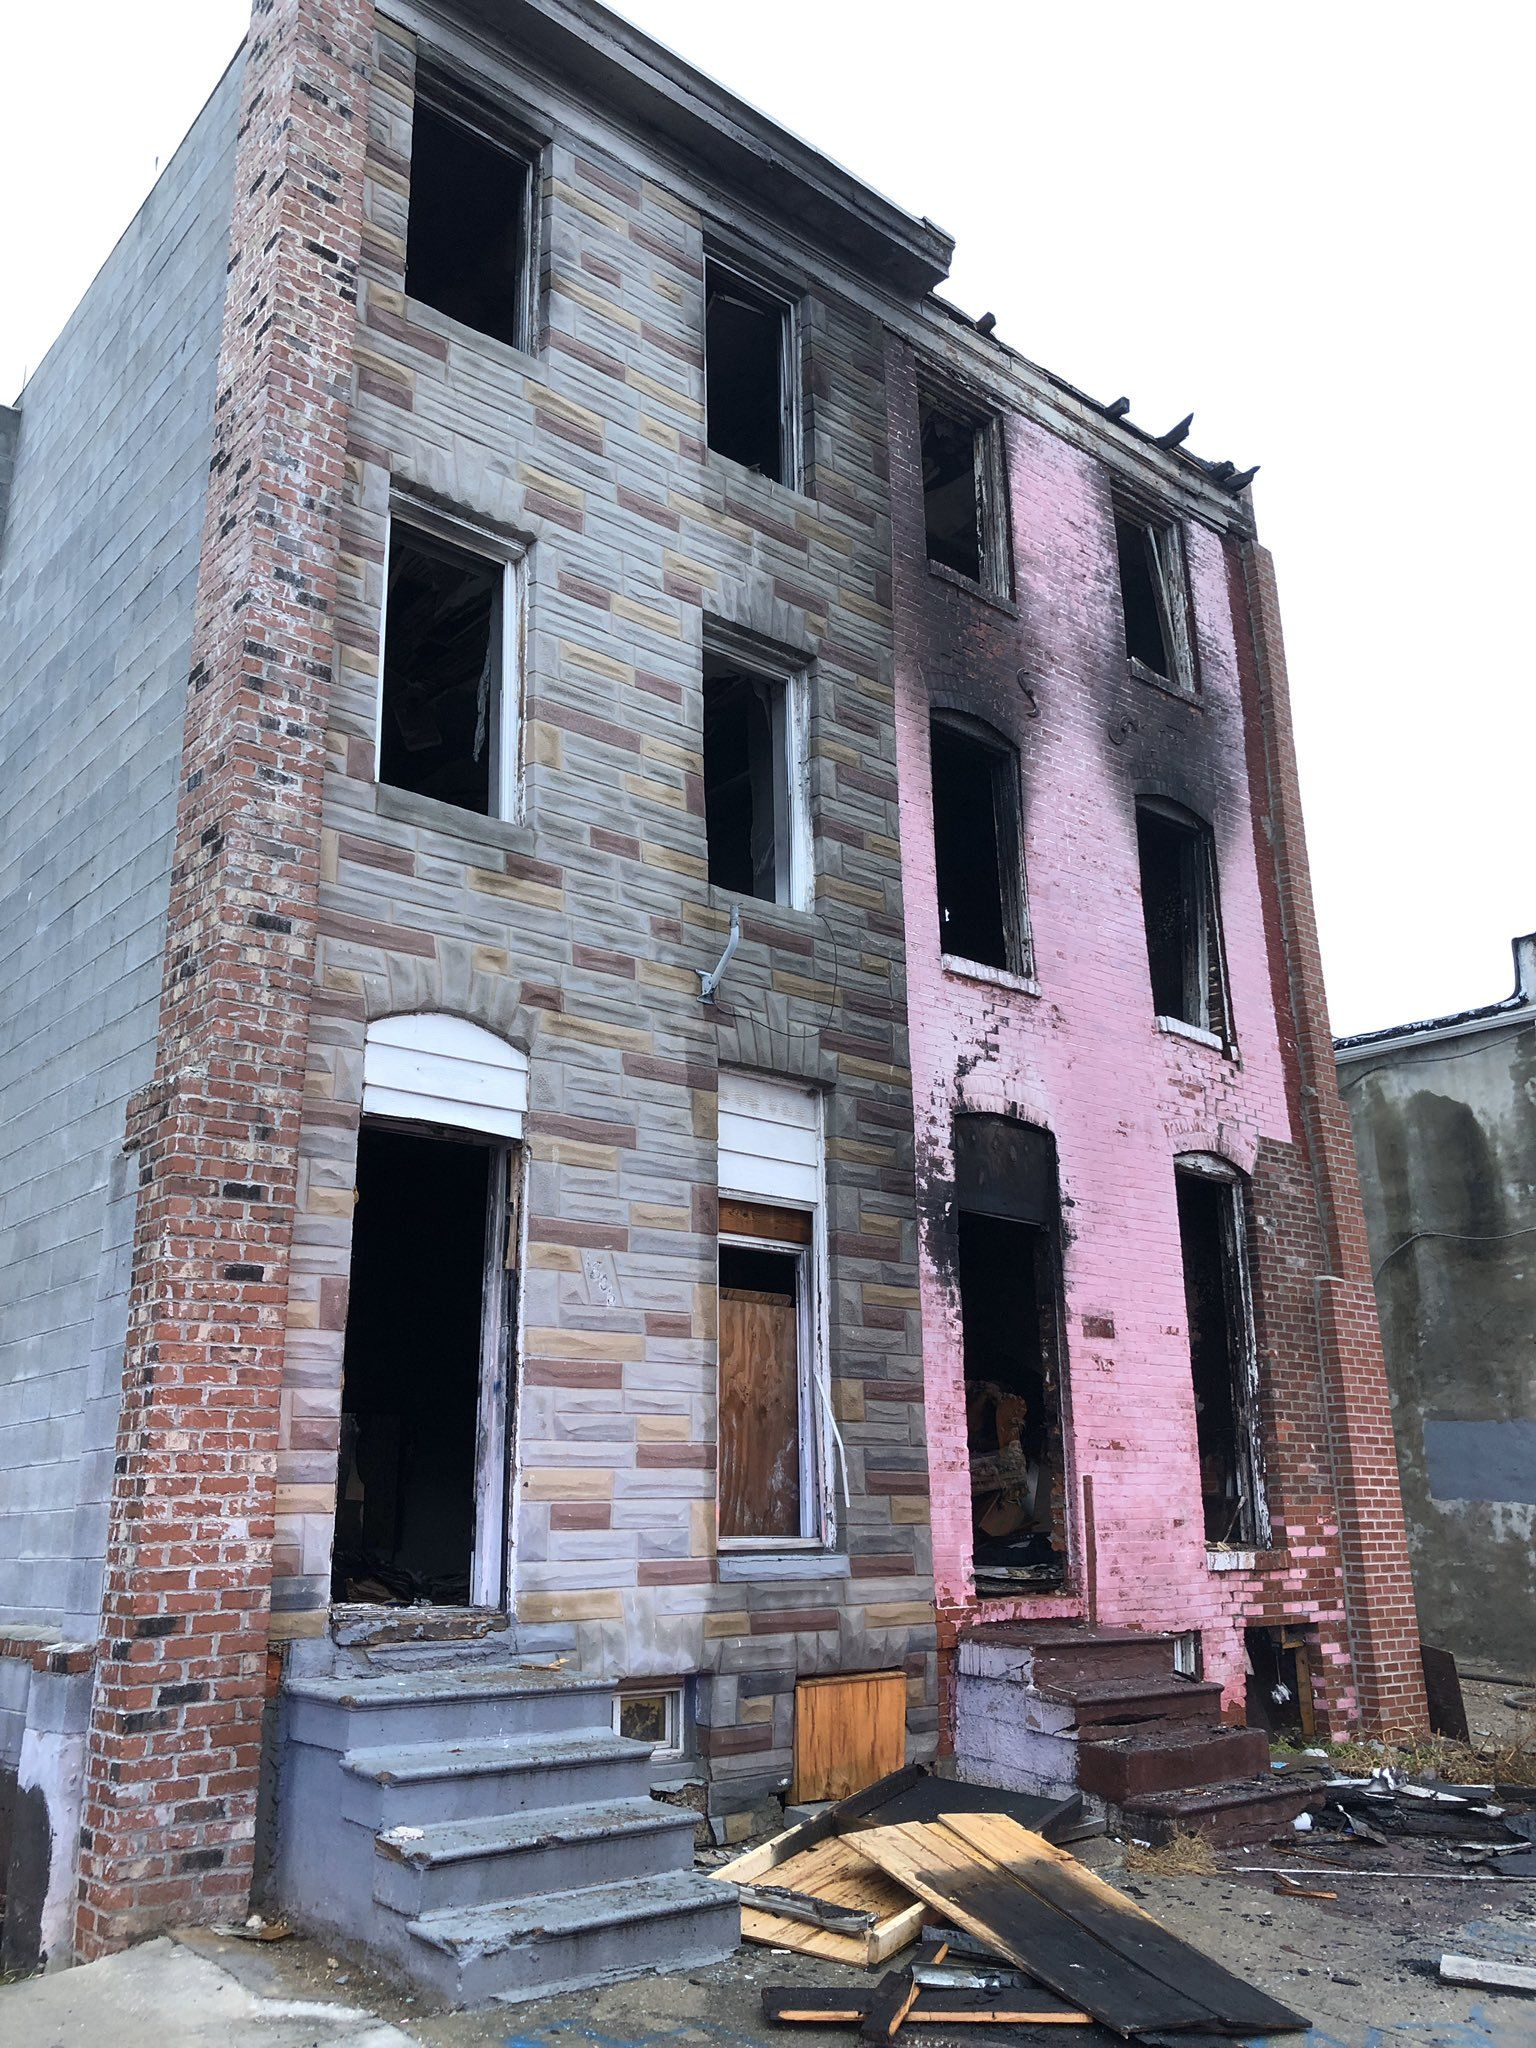 4+ fires reported in SW Baltimore